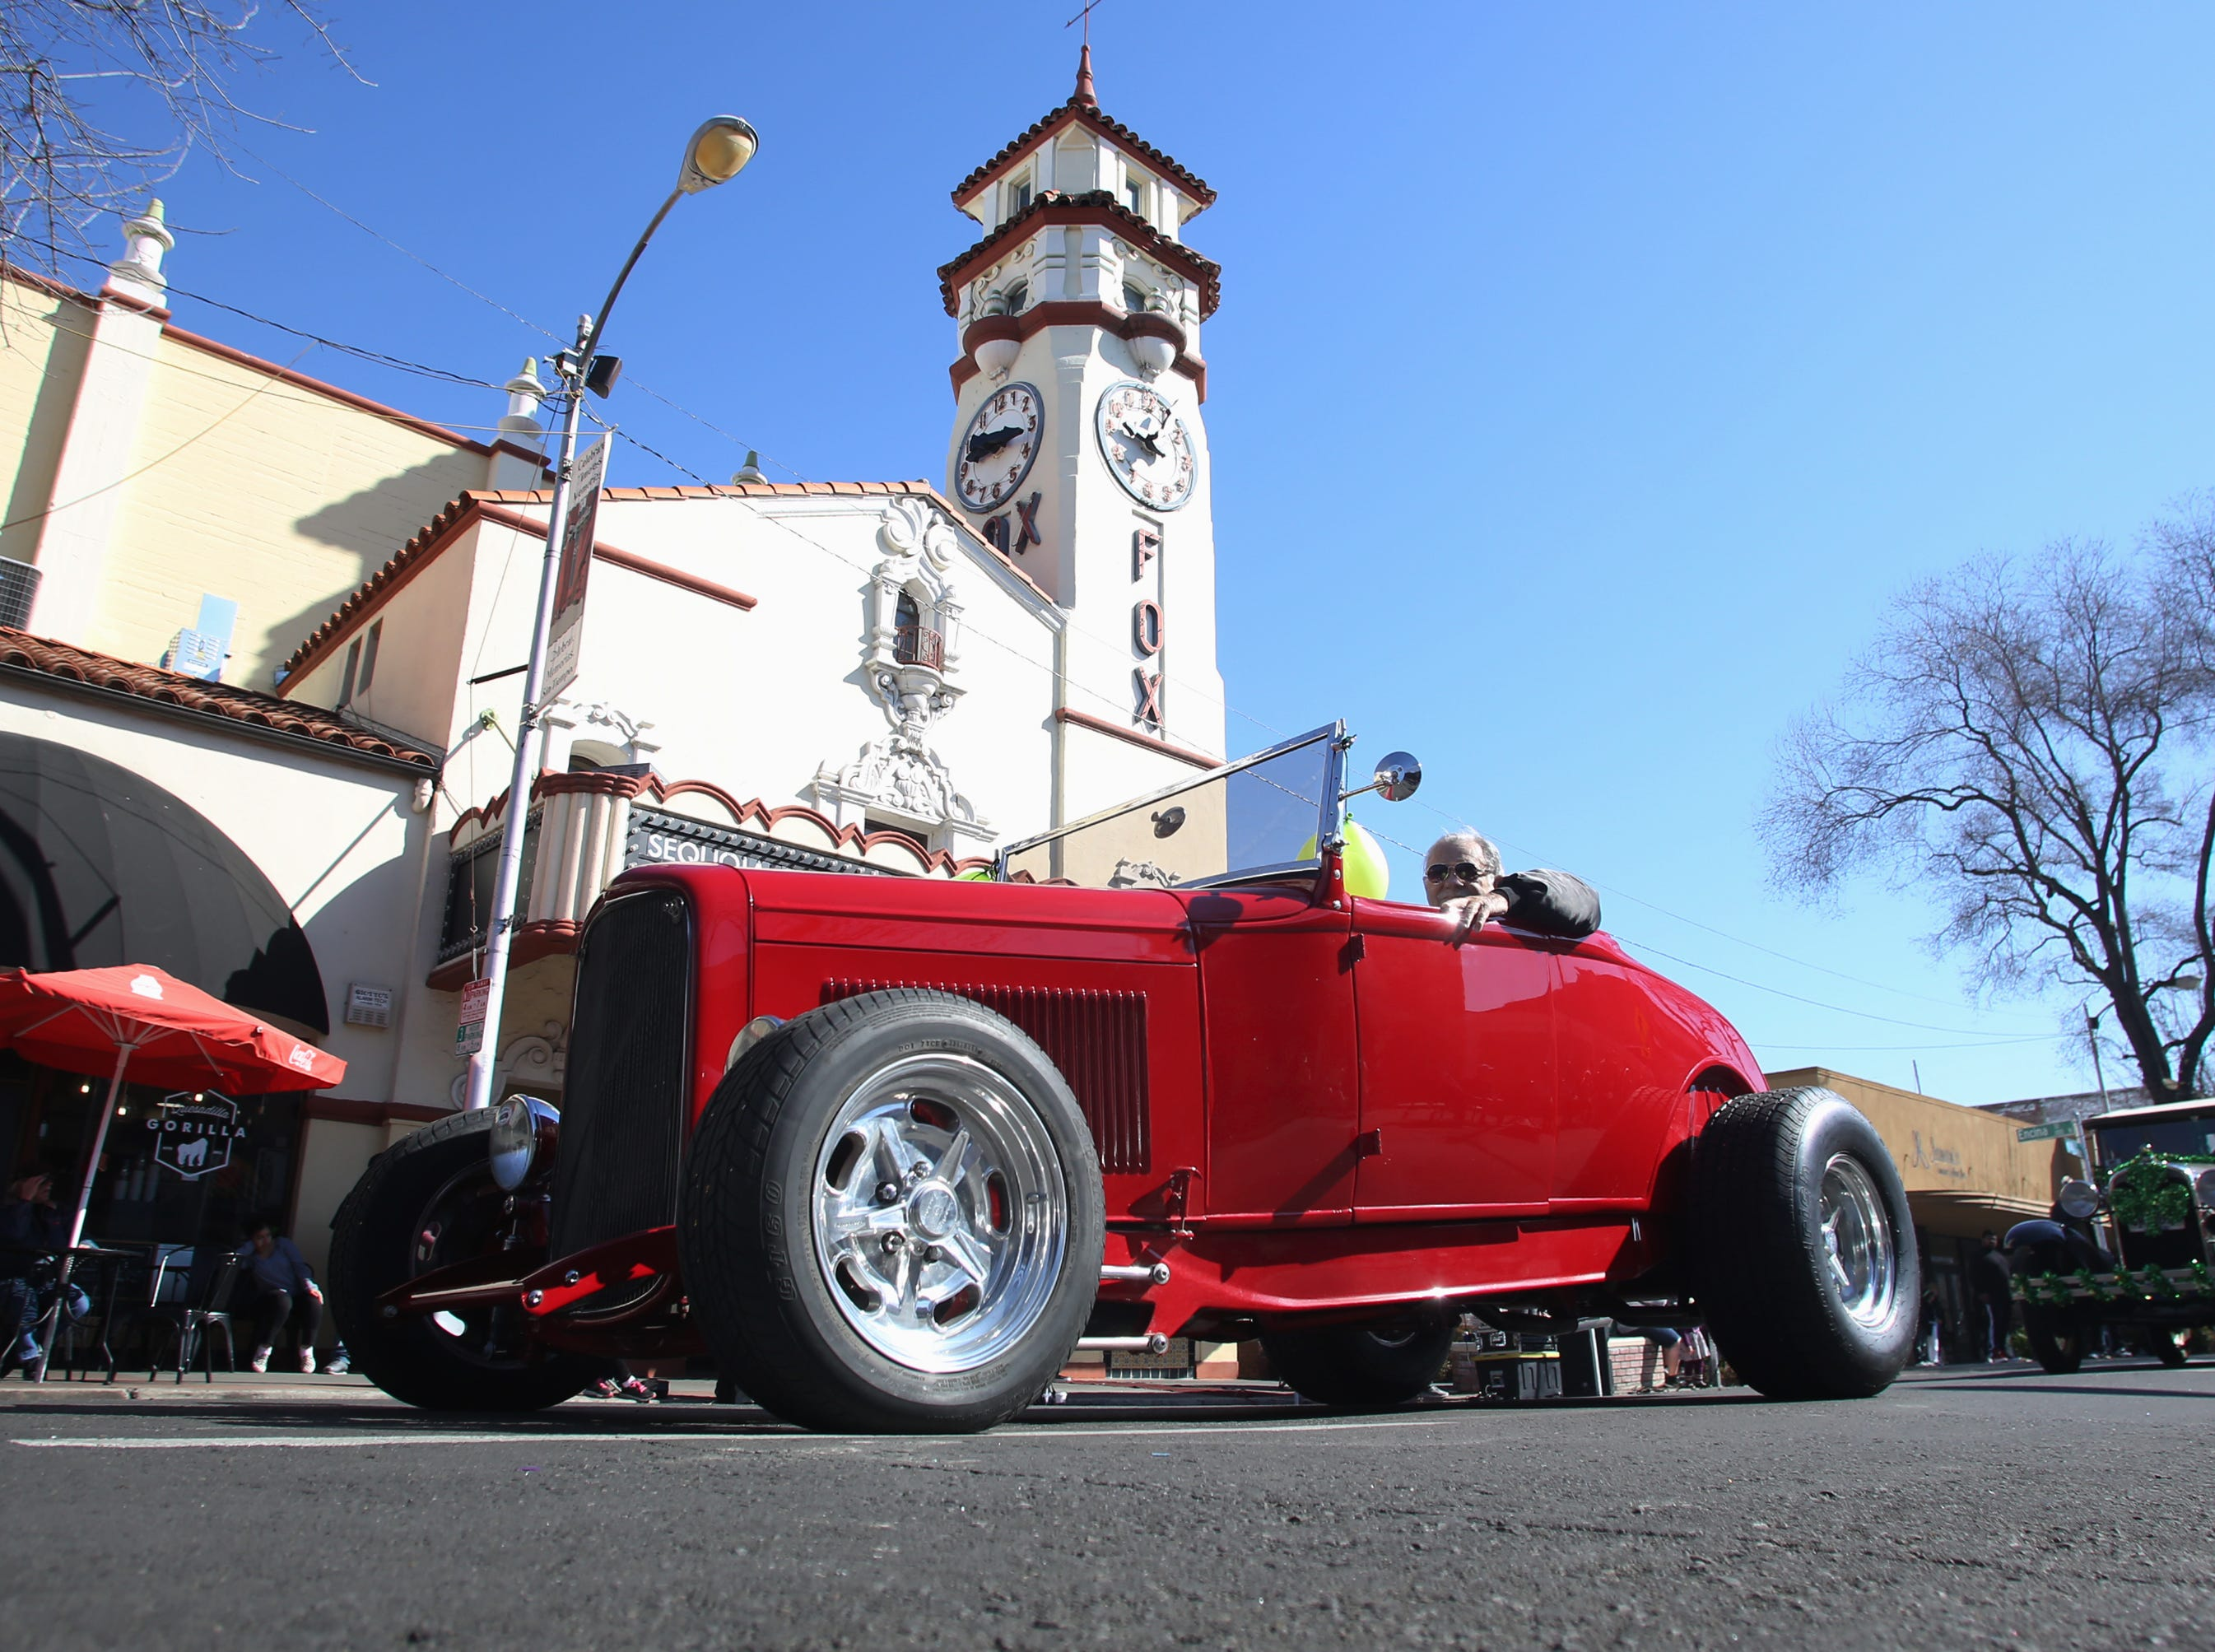 The Horseless Carriage Club of Tulare rolls on by the Fox at this year's St. Patrick's Day parade rolling through Main Street Saturday, March 16, 2019 in Visalia, Calif.